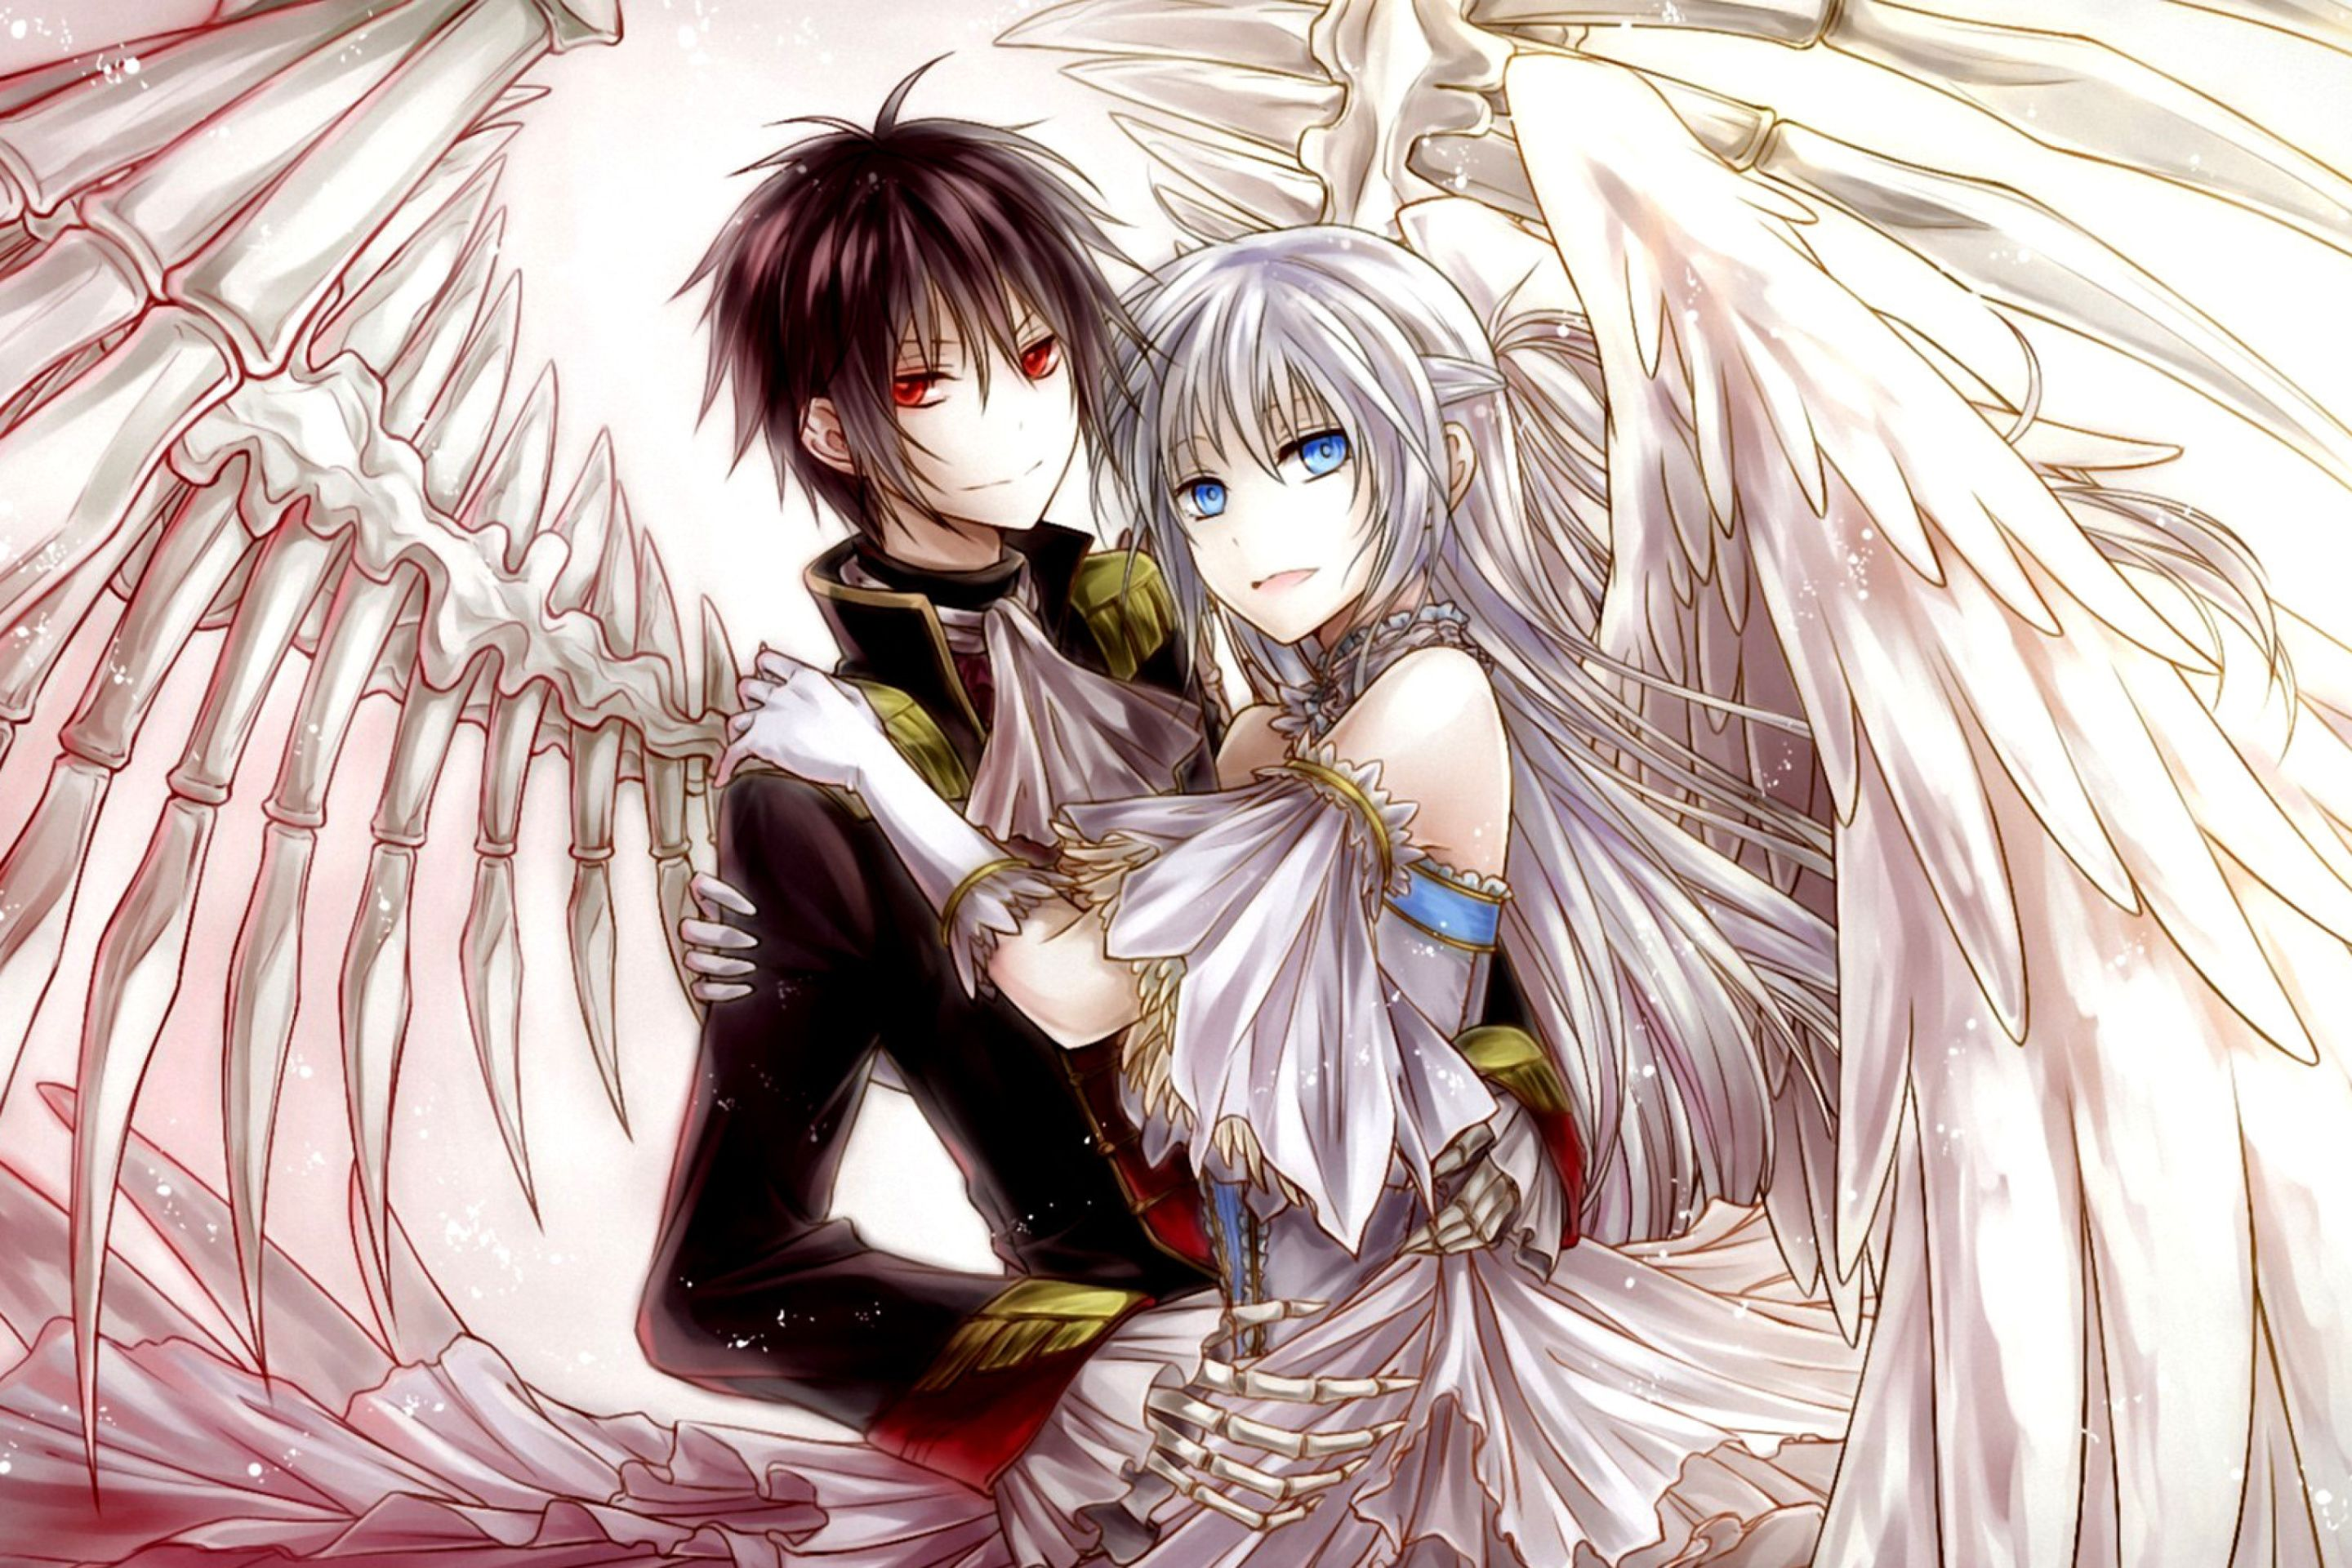 anime angel and demon love anime in 2018 pinterest anime angel